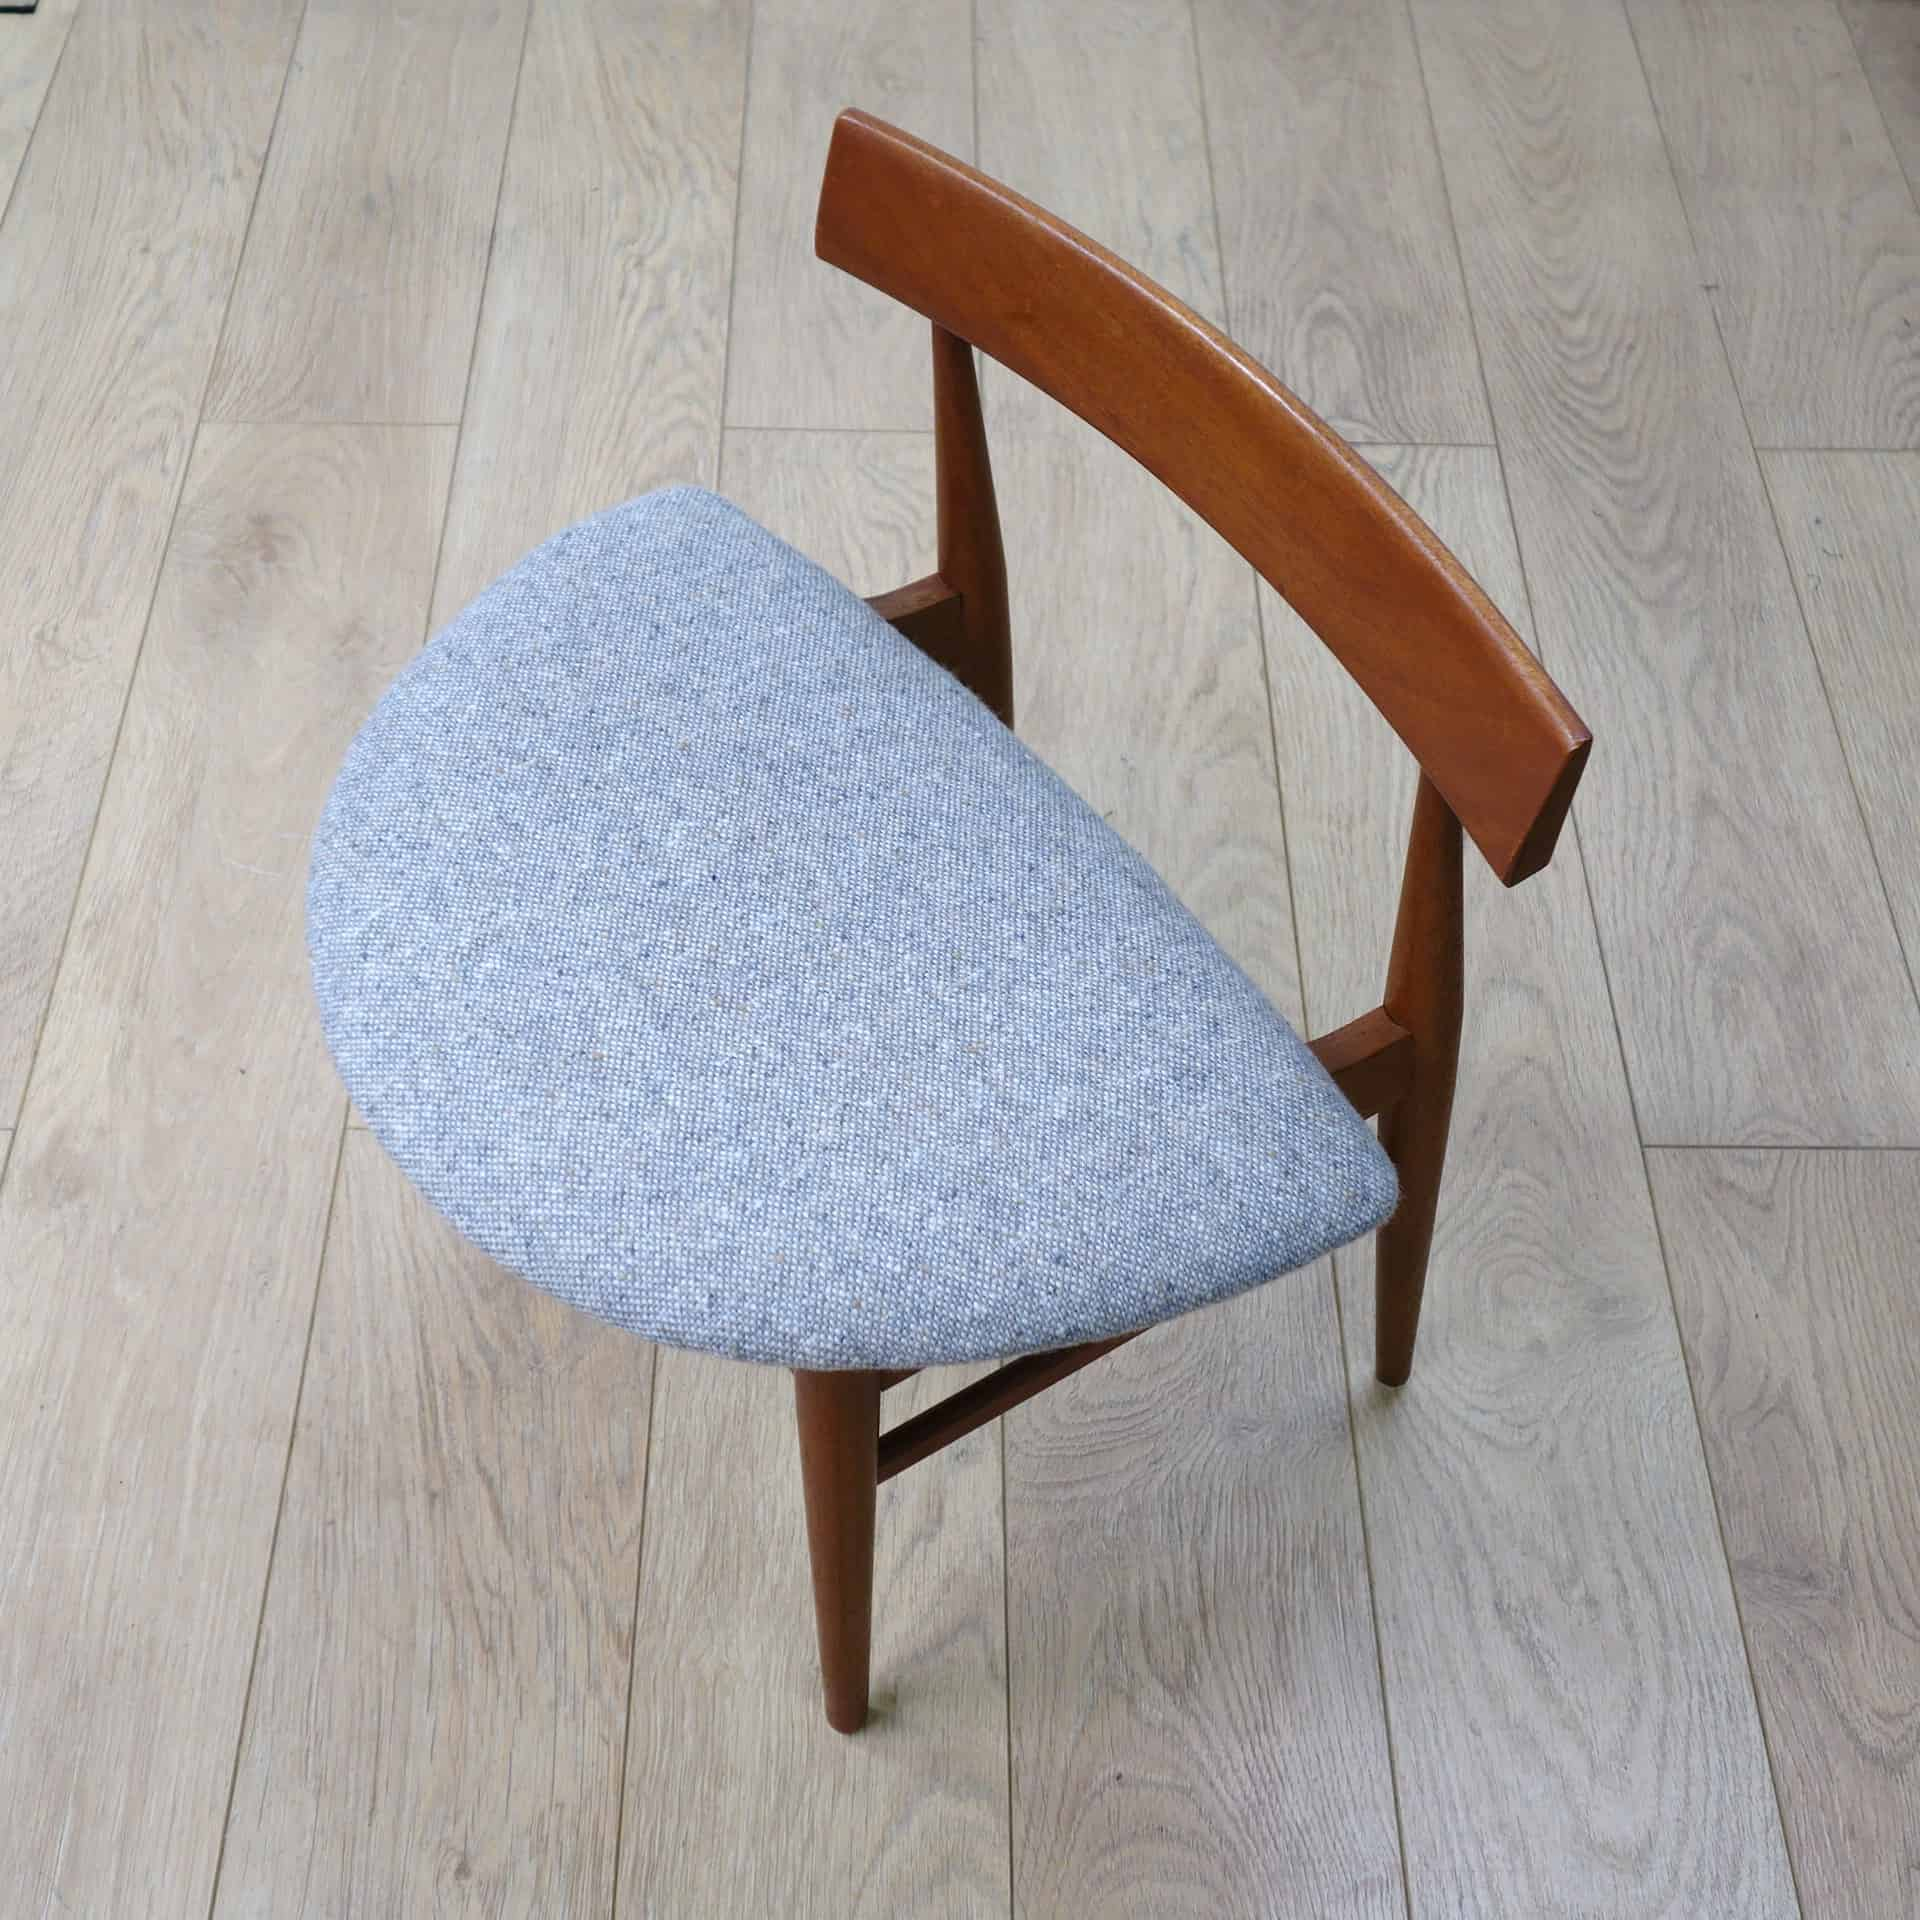 thomas table and chairs uk barrel swivel rocker dressing chair by greaves mark parrish